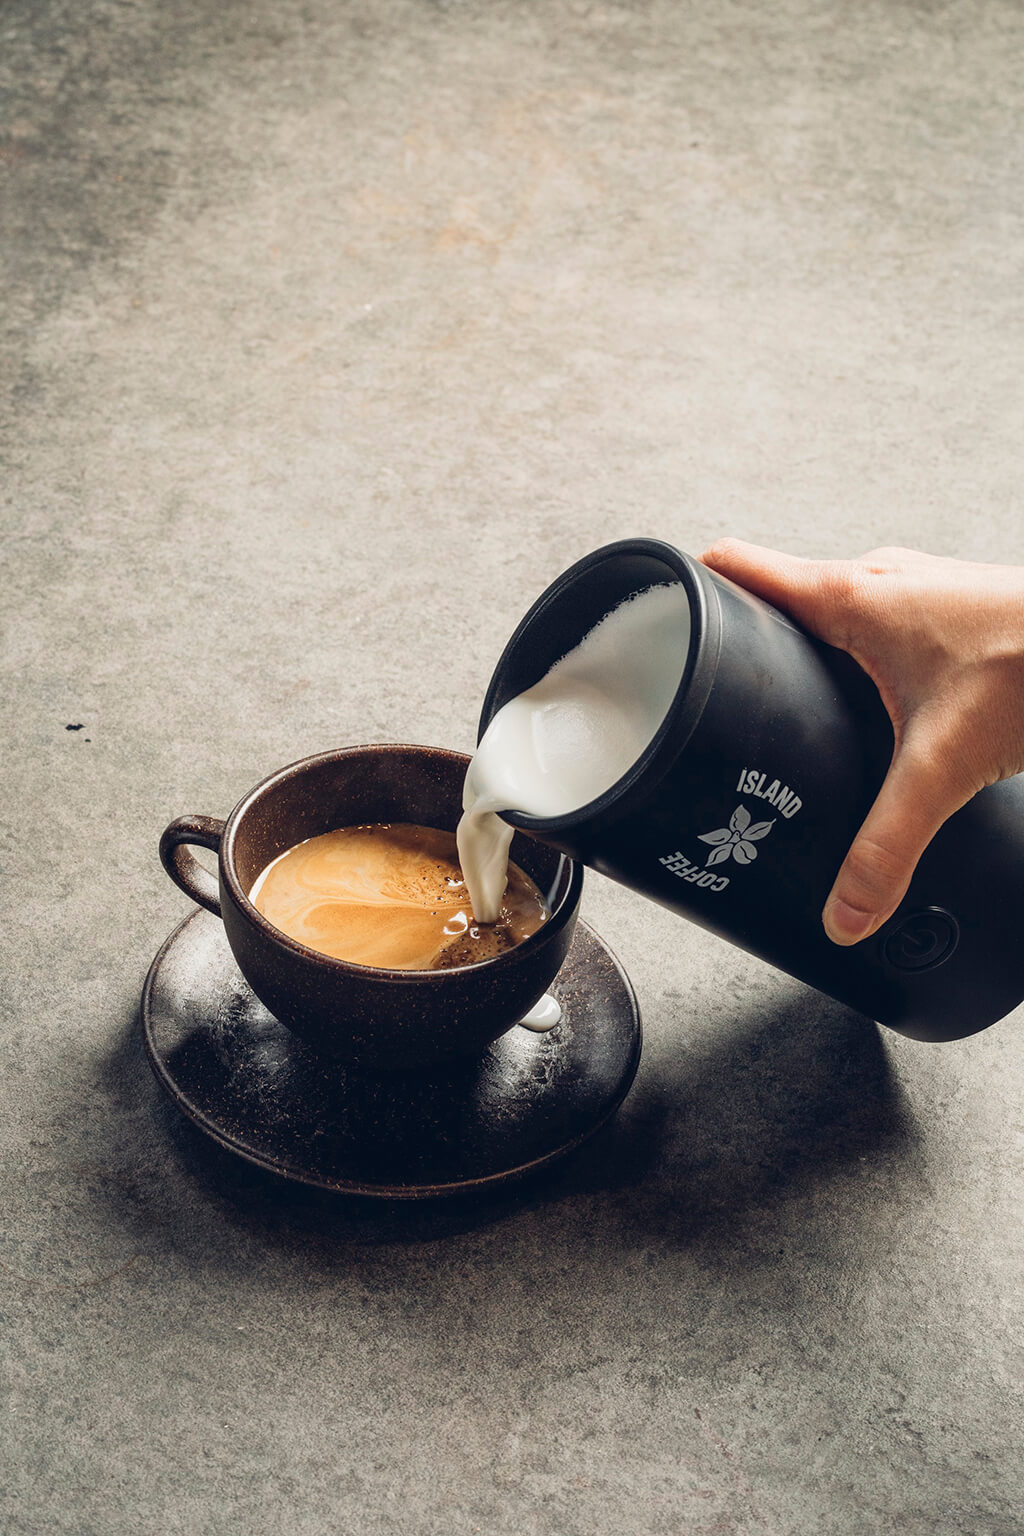 A woman pouring milk into a coffee island coffee.